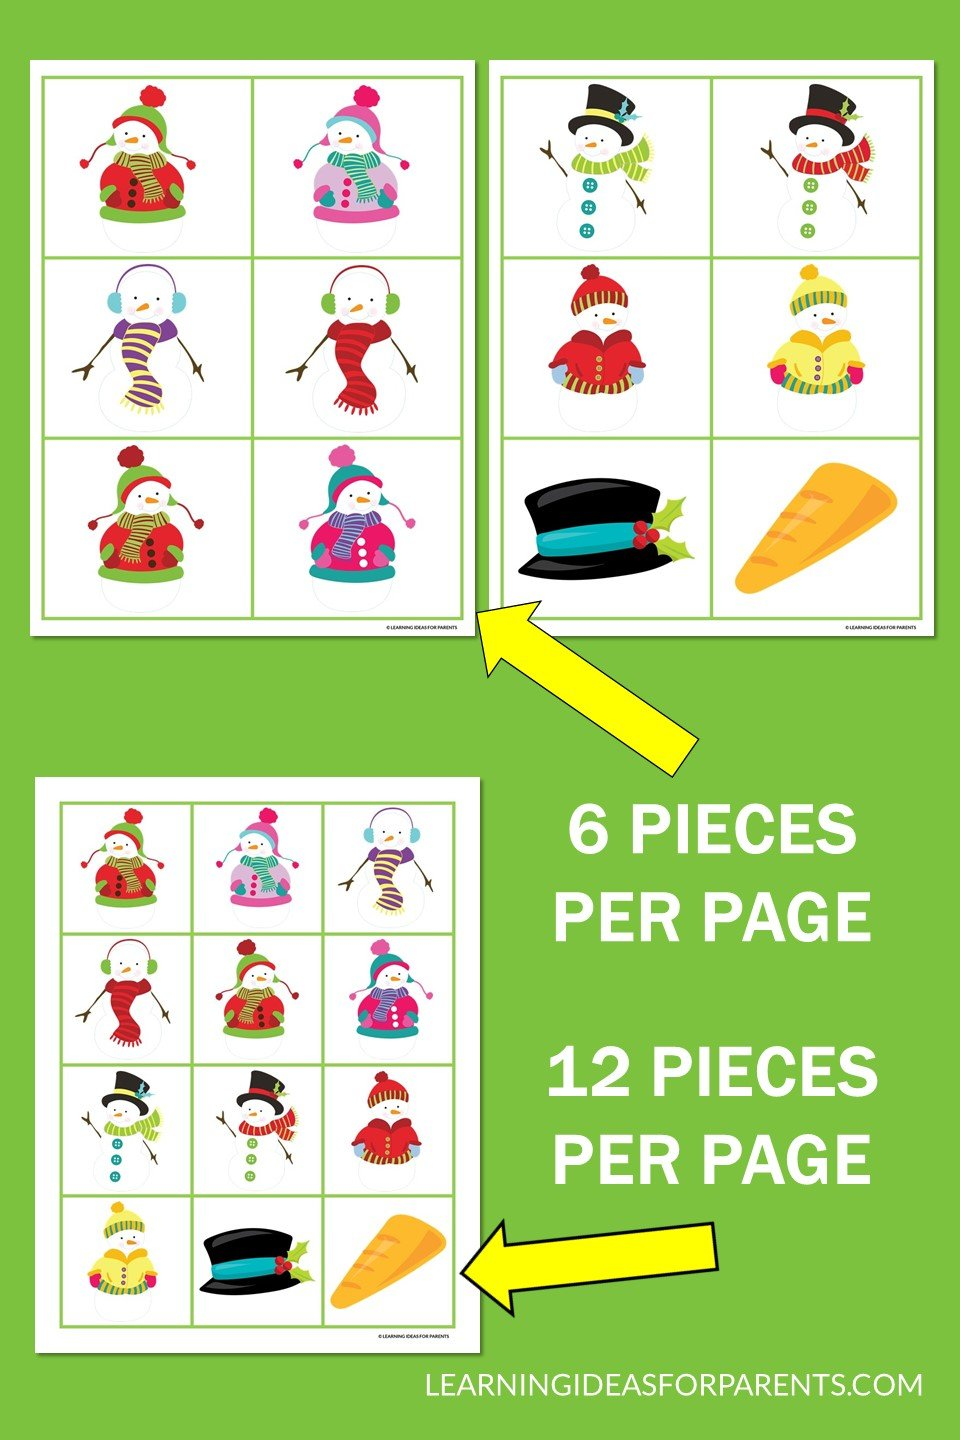 Snowman memory game free printable example pages